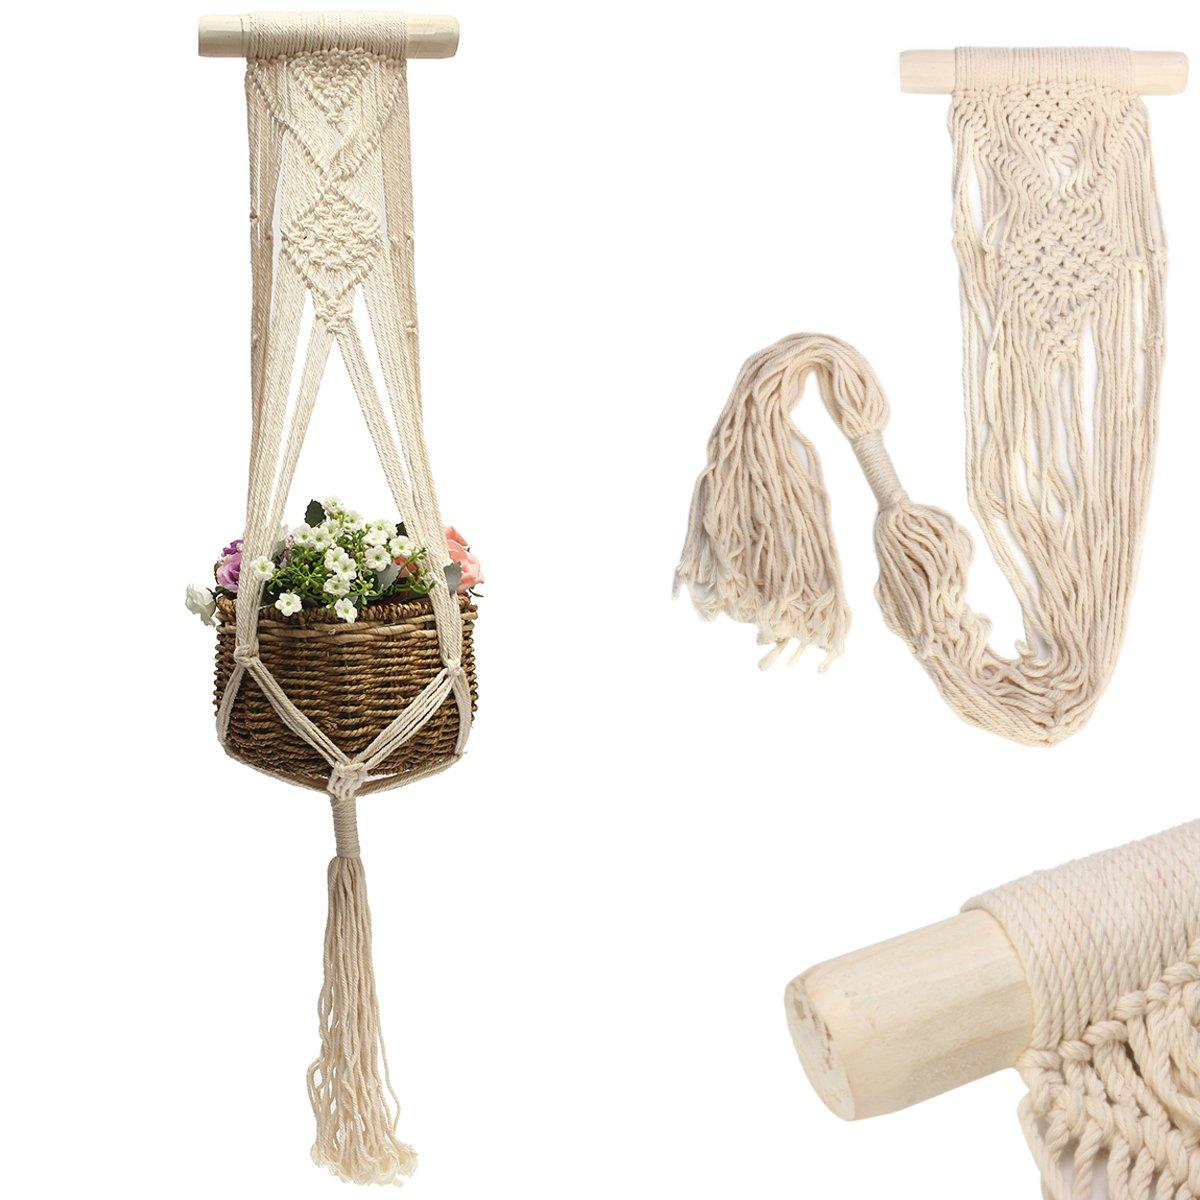 Plants Hanger 40 Inch Vintage Macrame Flower Pot Holder String Hanging Rope Wall Art Home Balcony Decoration Garden Supplies